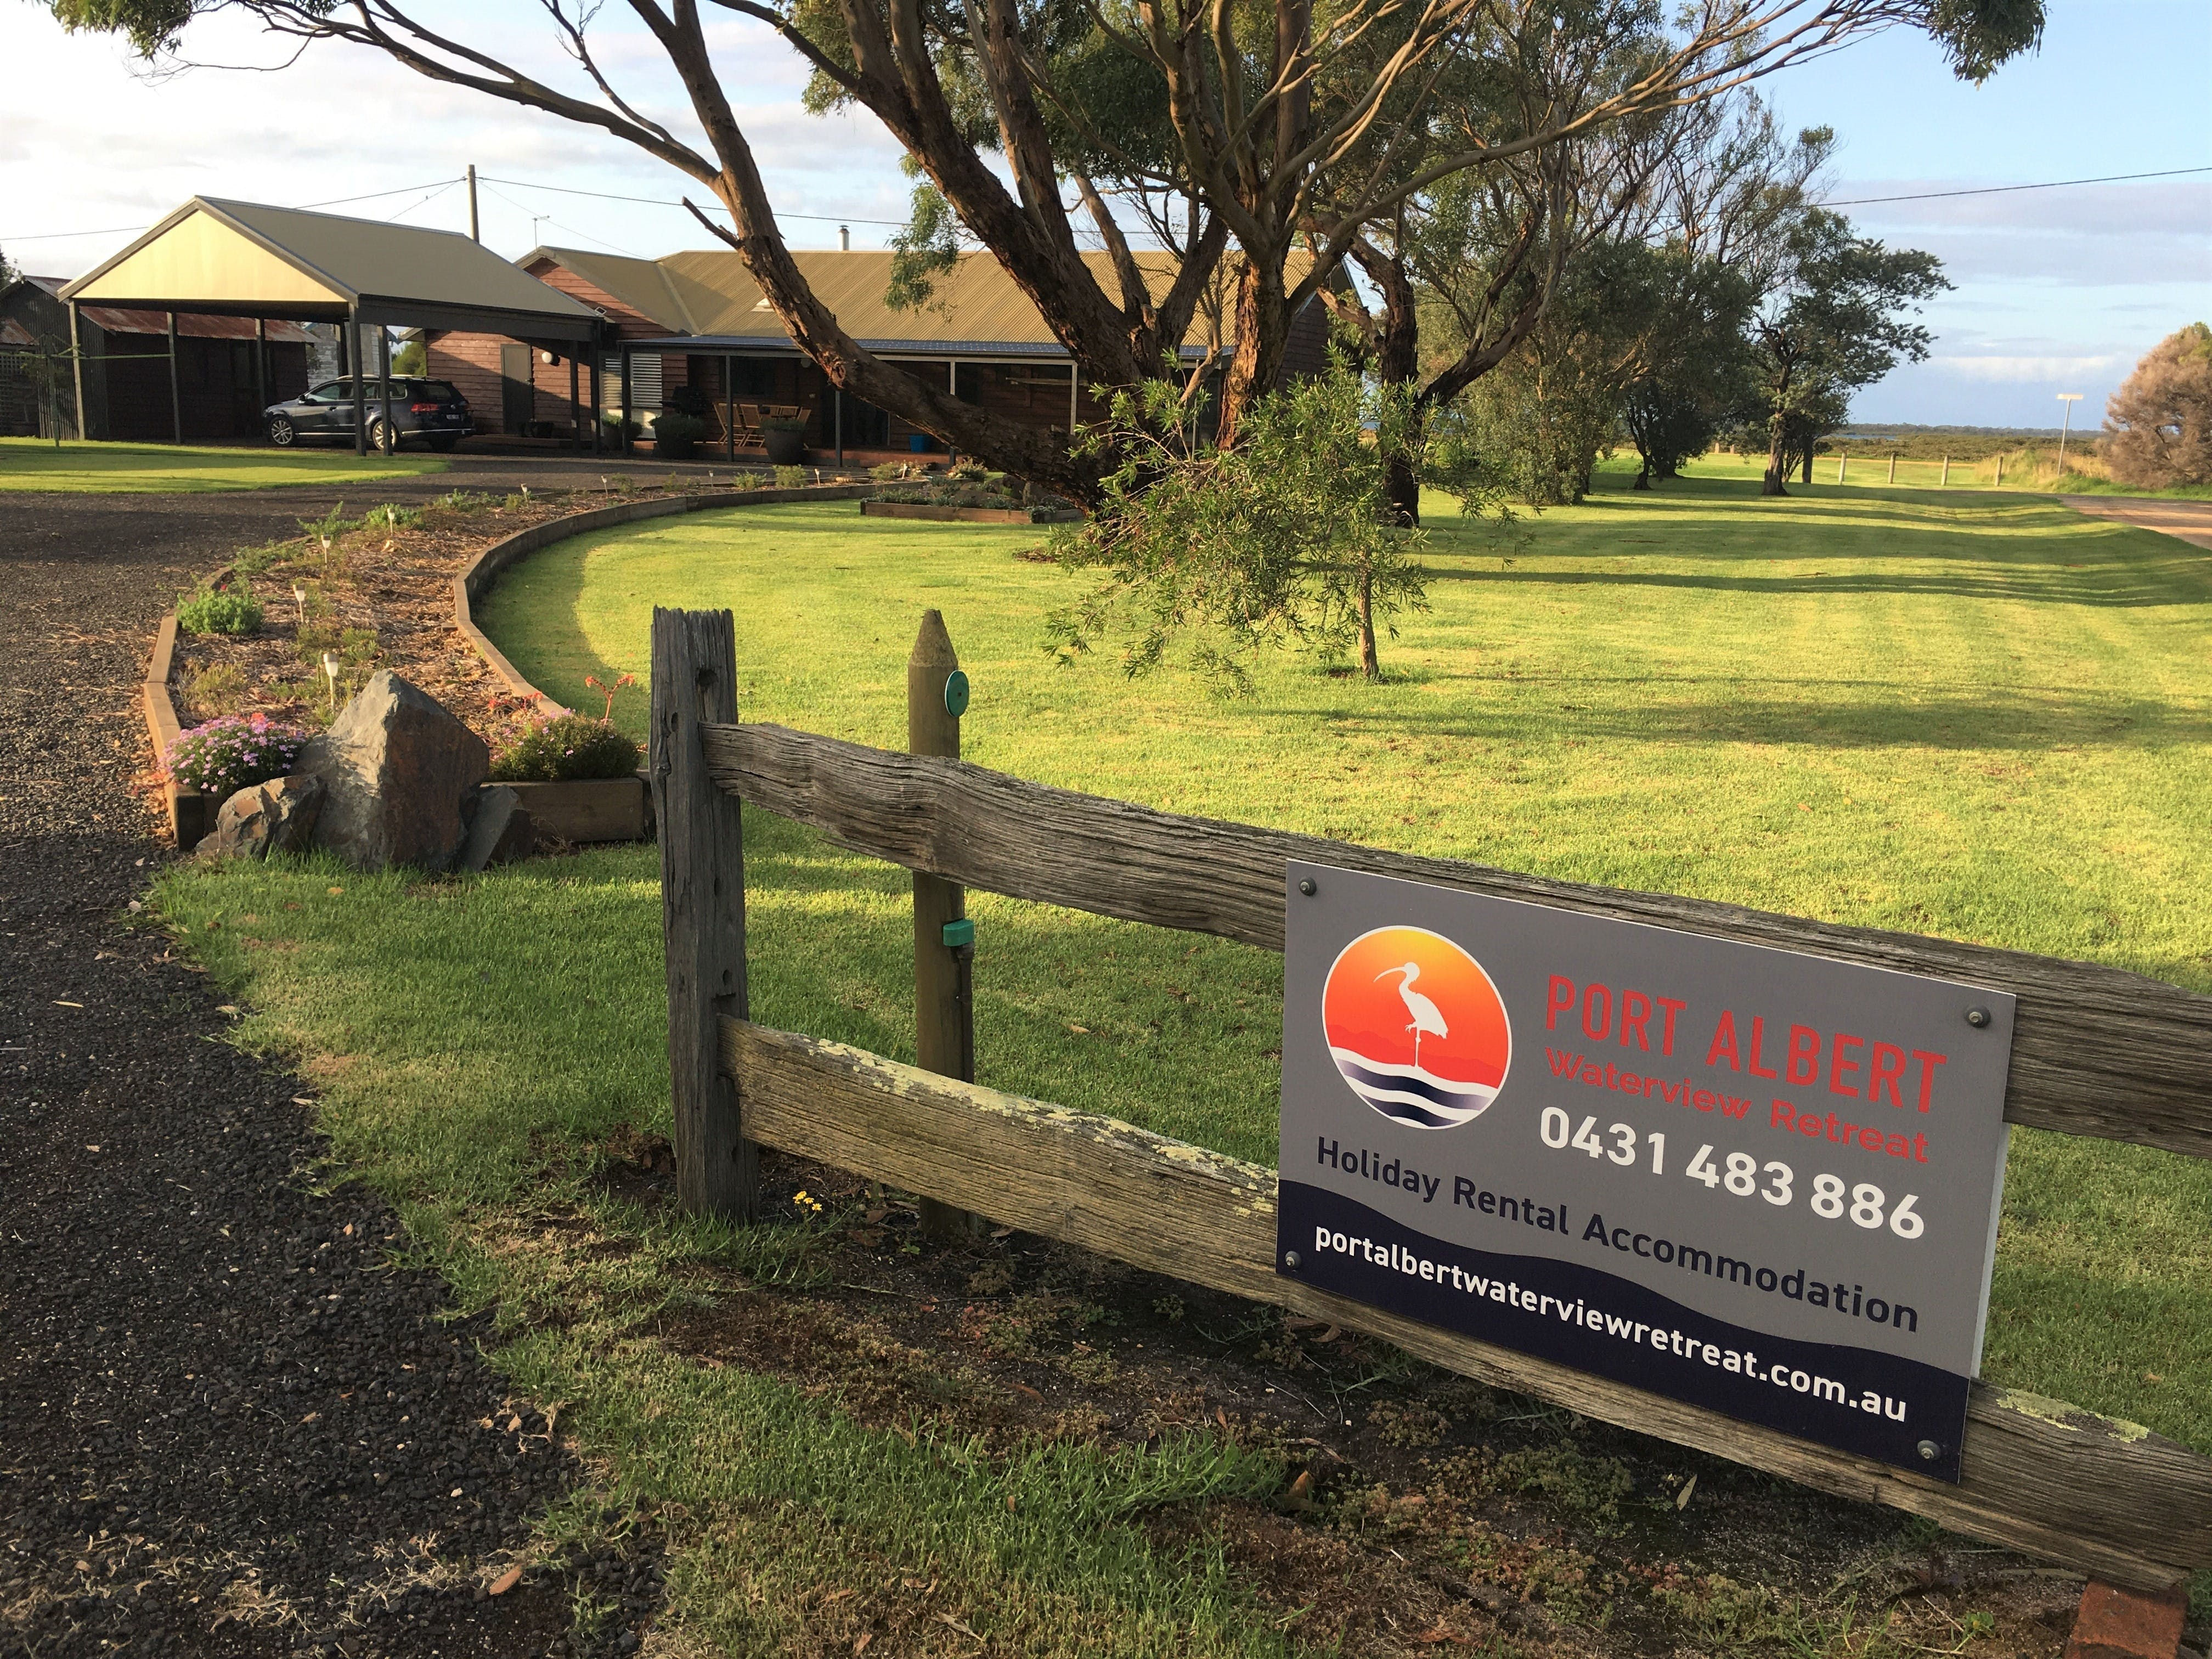 Port Albert Waterview Retreat - Phillip Island Accommodation